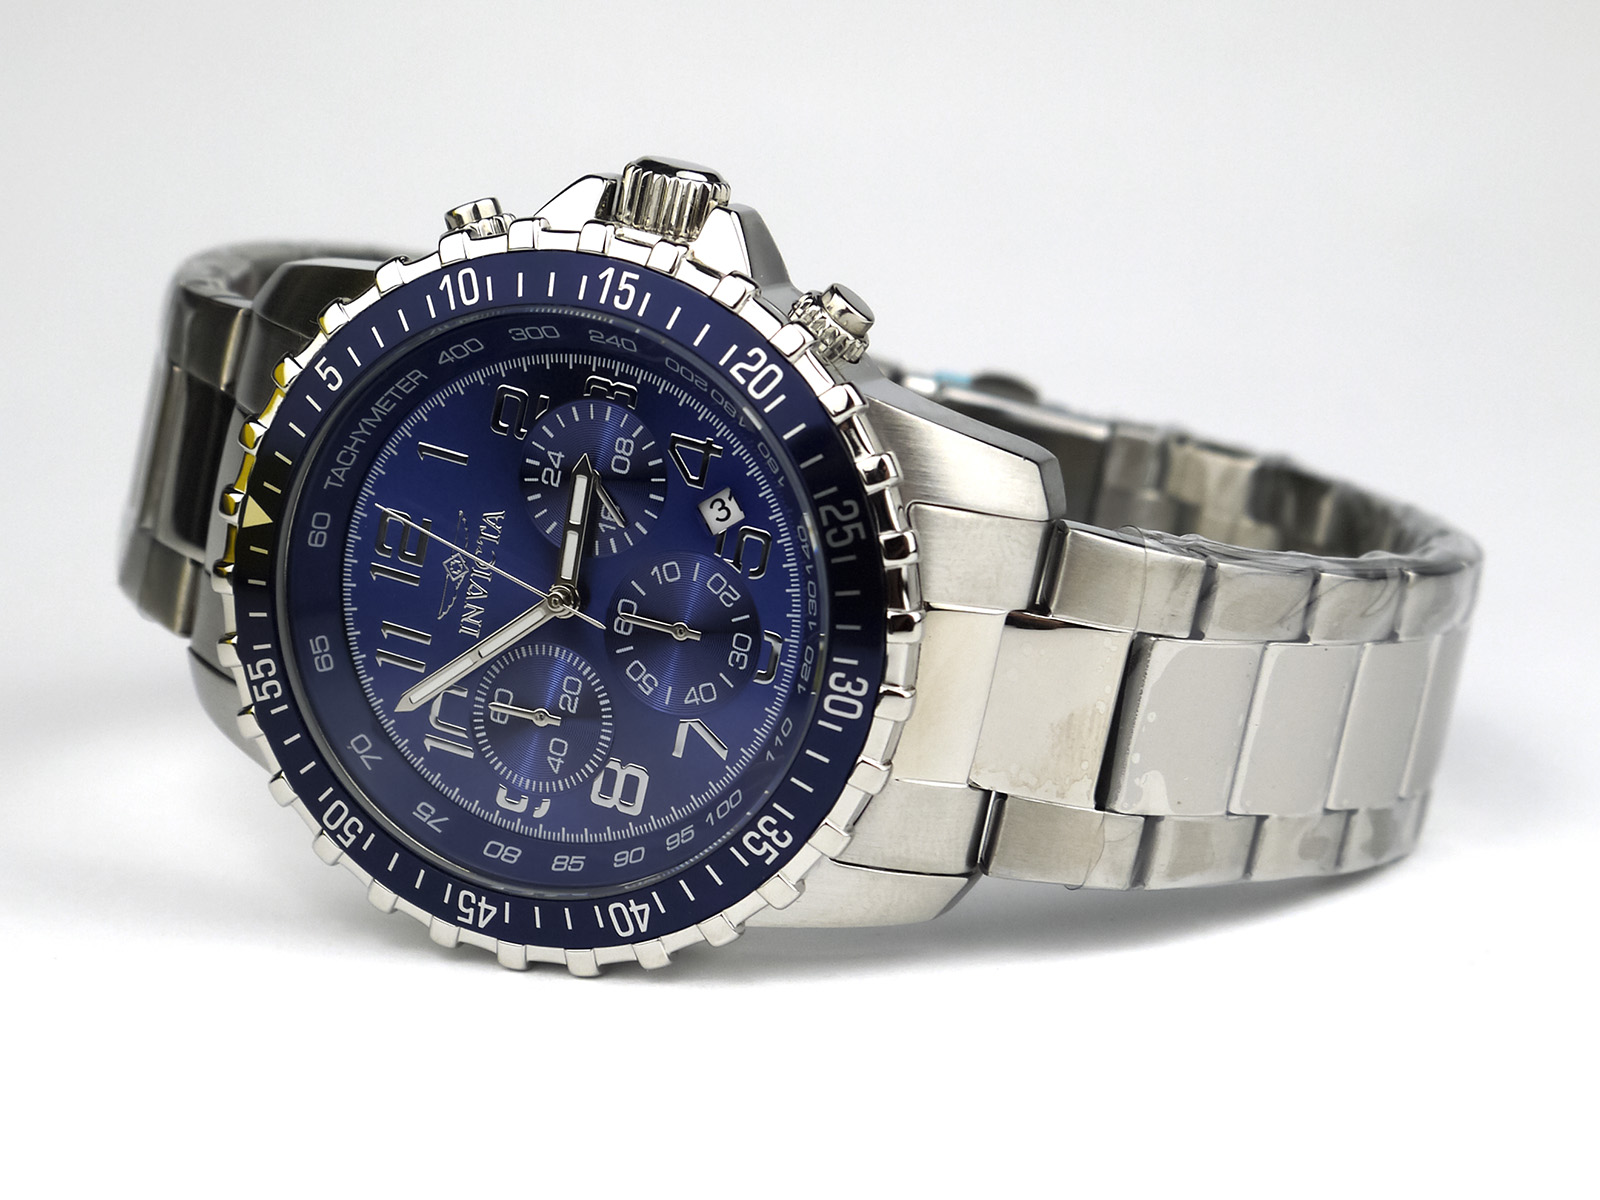 Invicta 6621 II Collection Chronograph Stainless Steel Blue Dial Watch